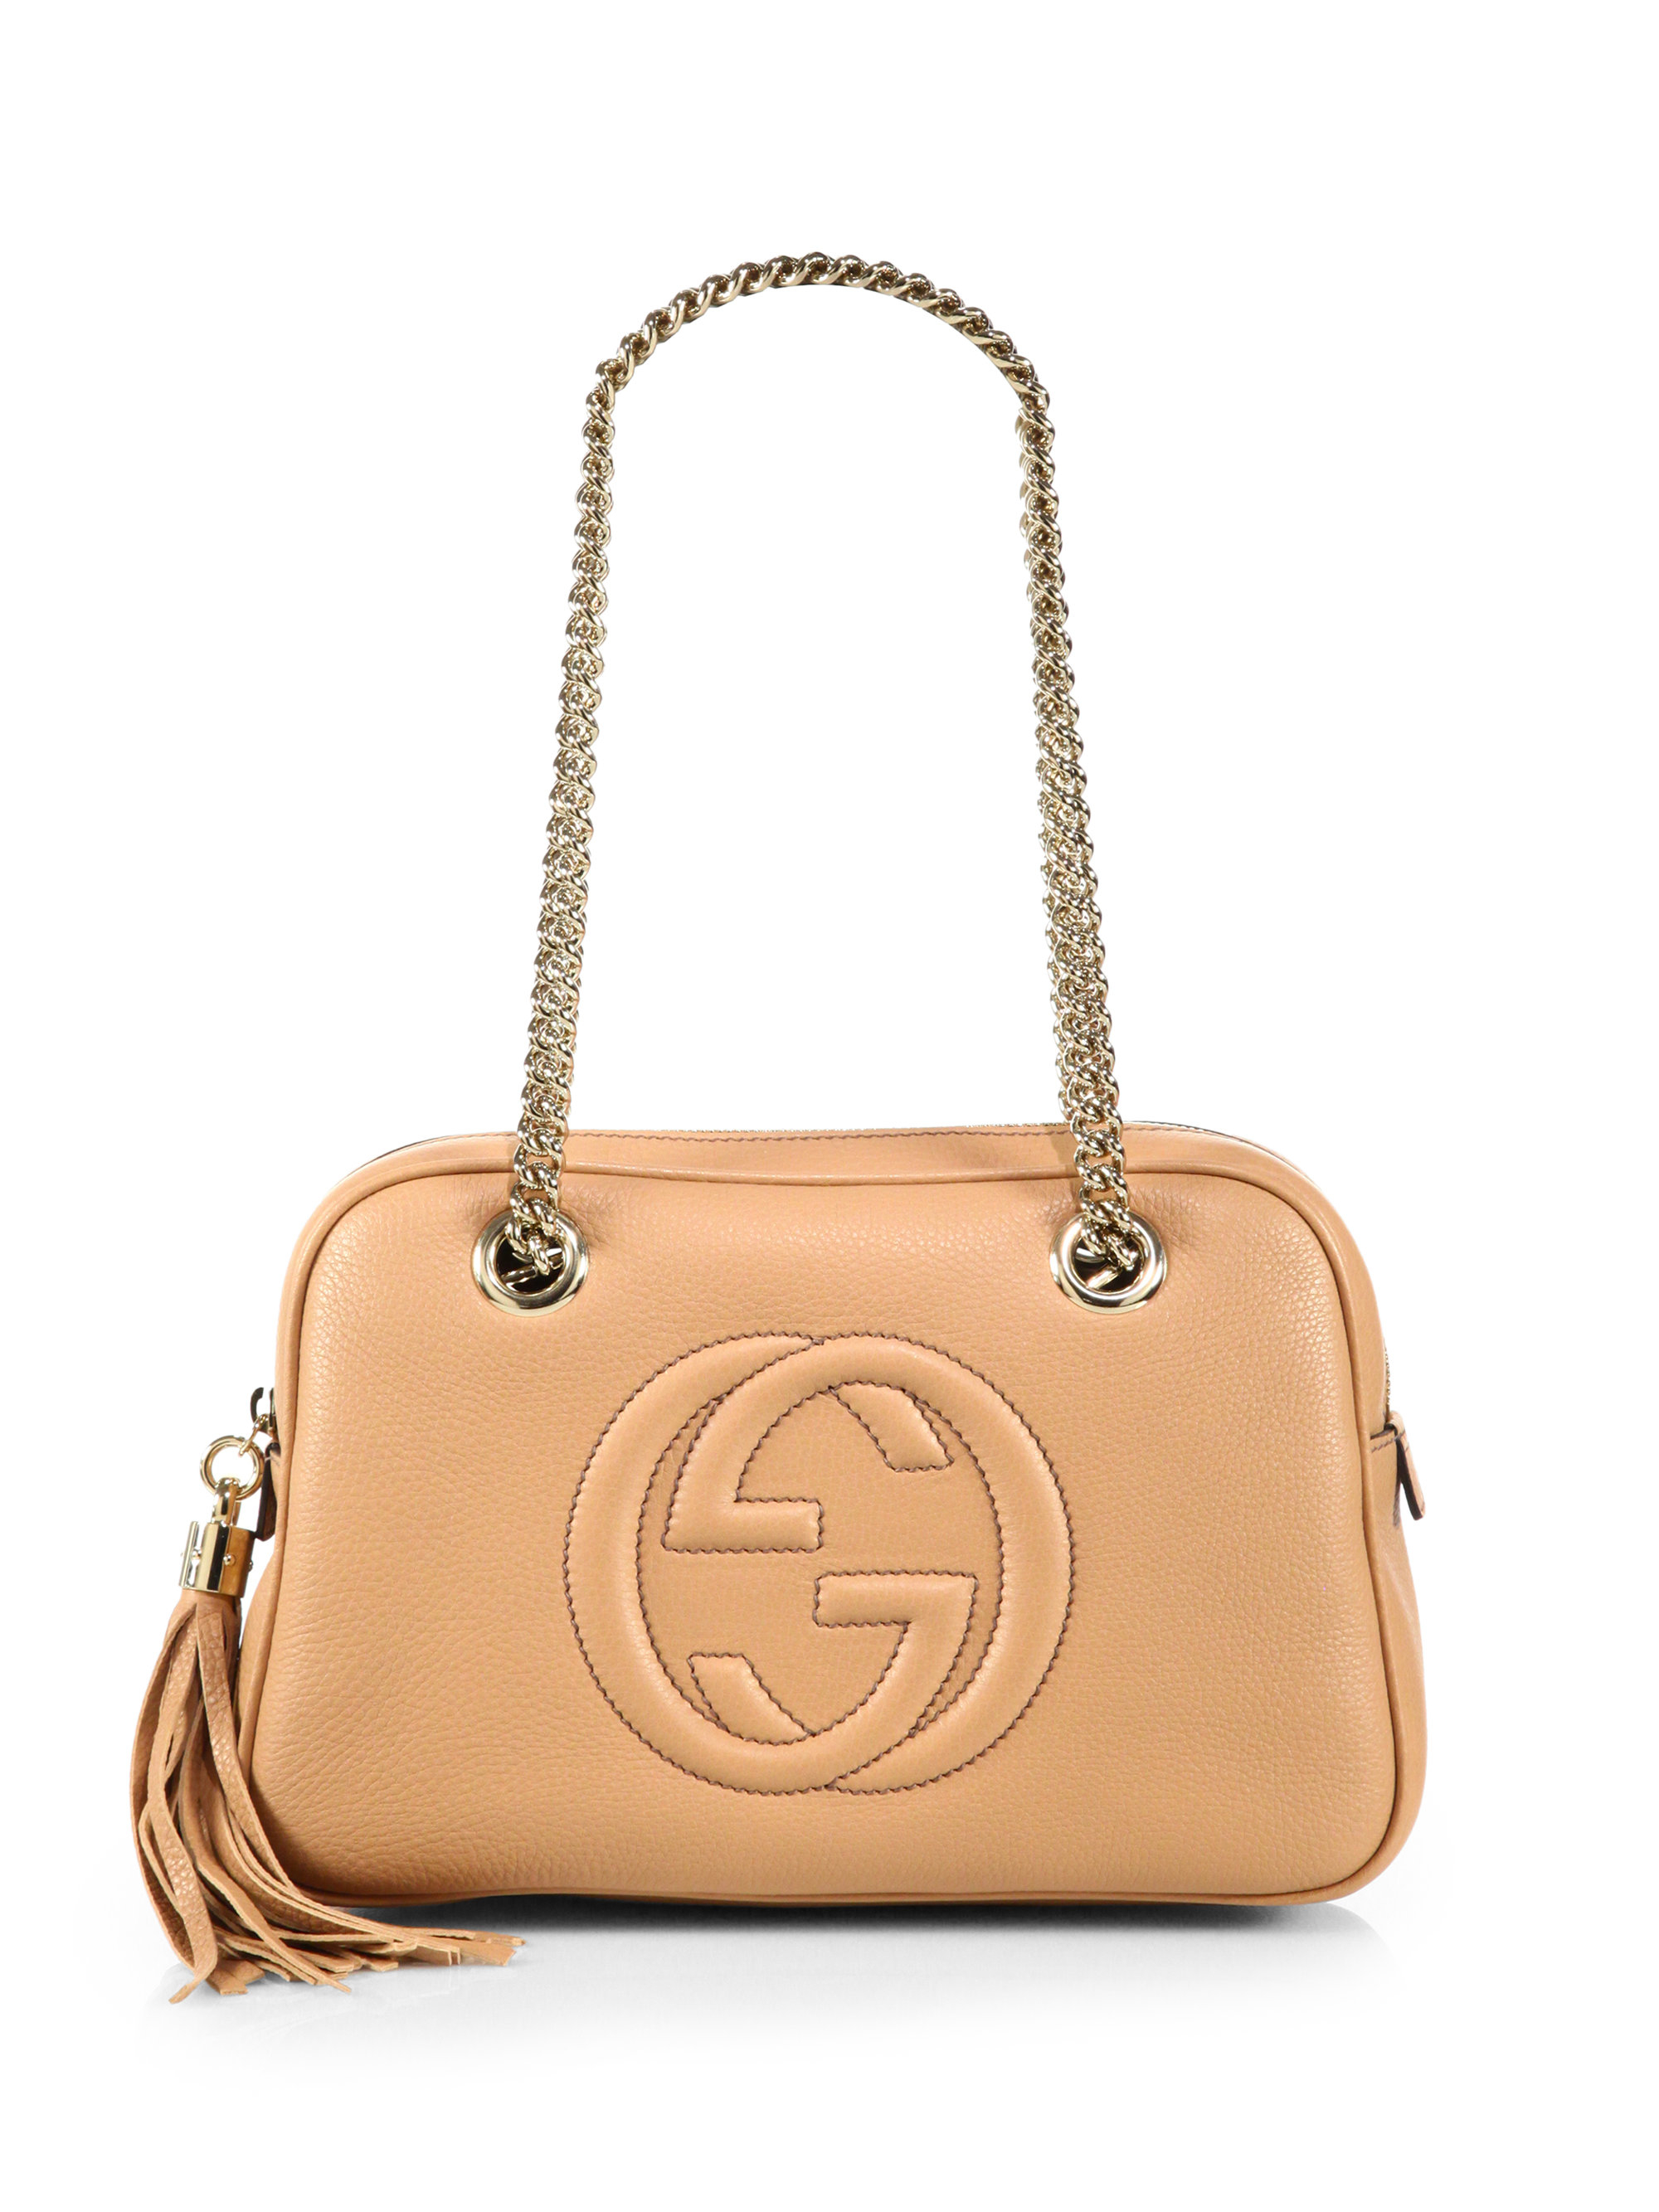 bede60c7f7c Lyst - Gucci Soho Leather Chain Shoulder Bag in Pink